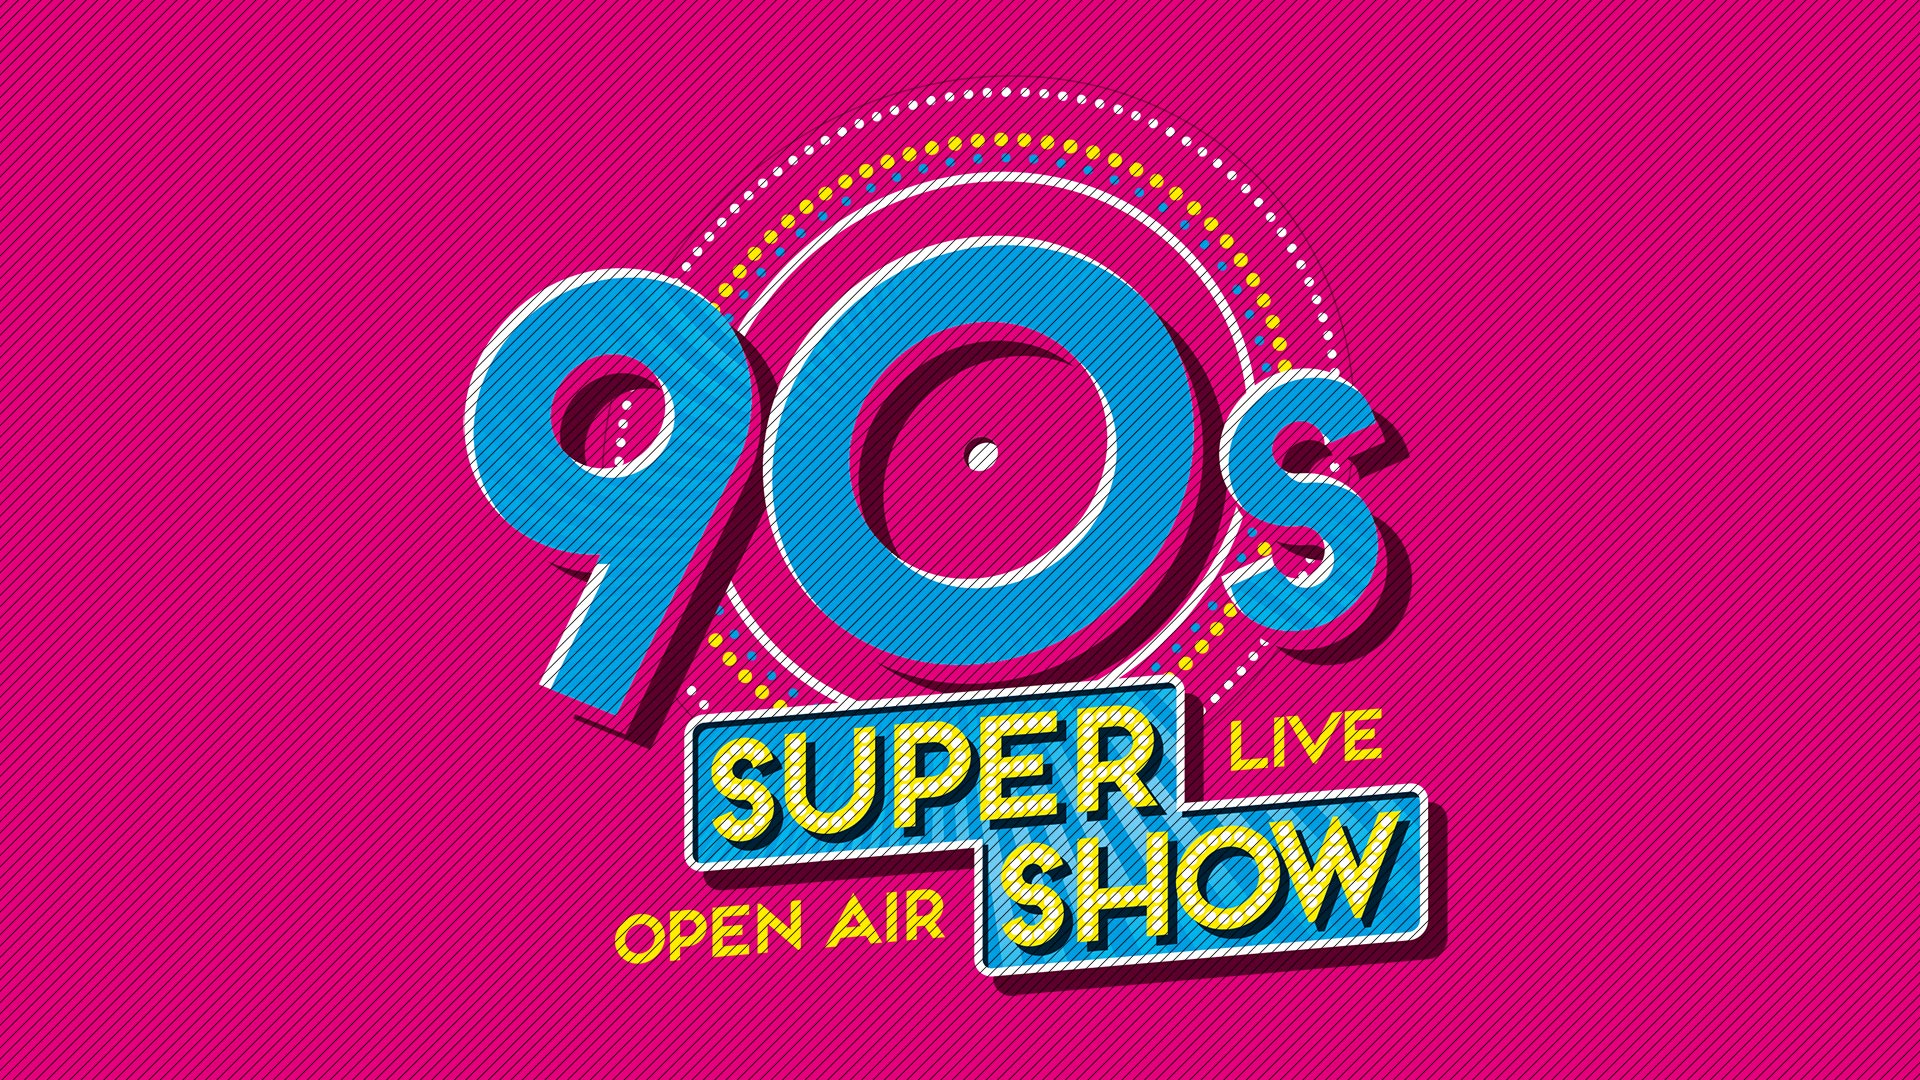 90s supershow